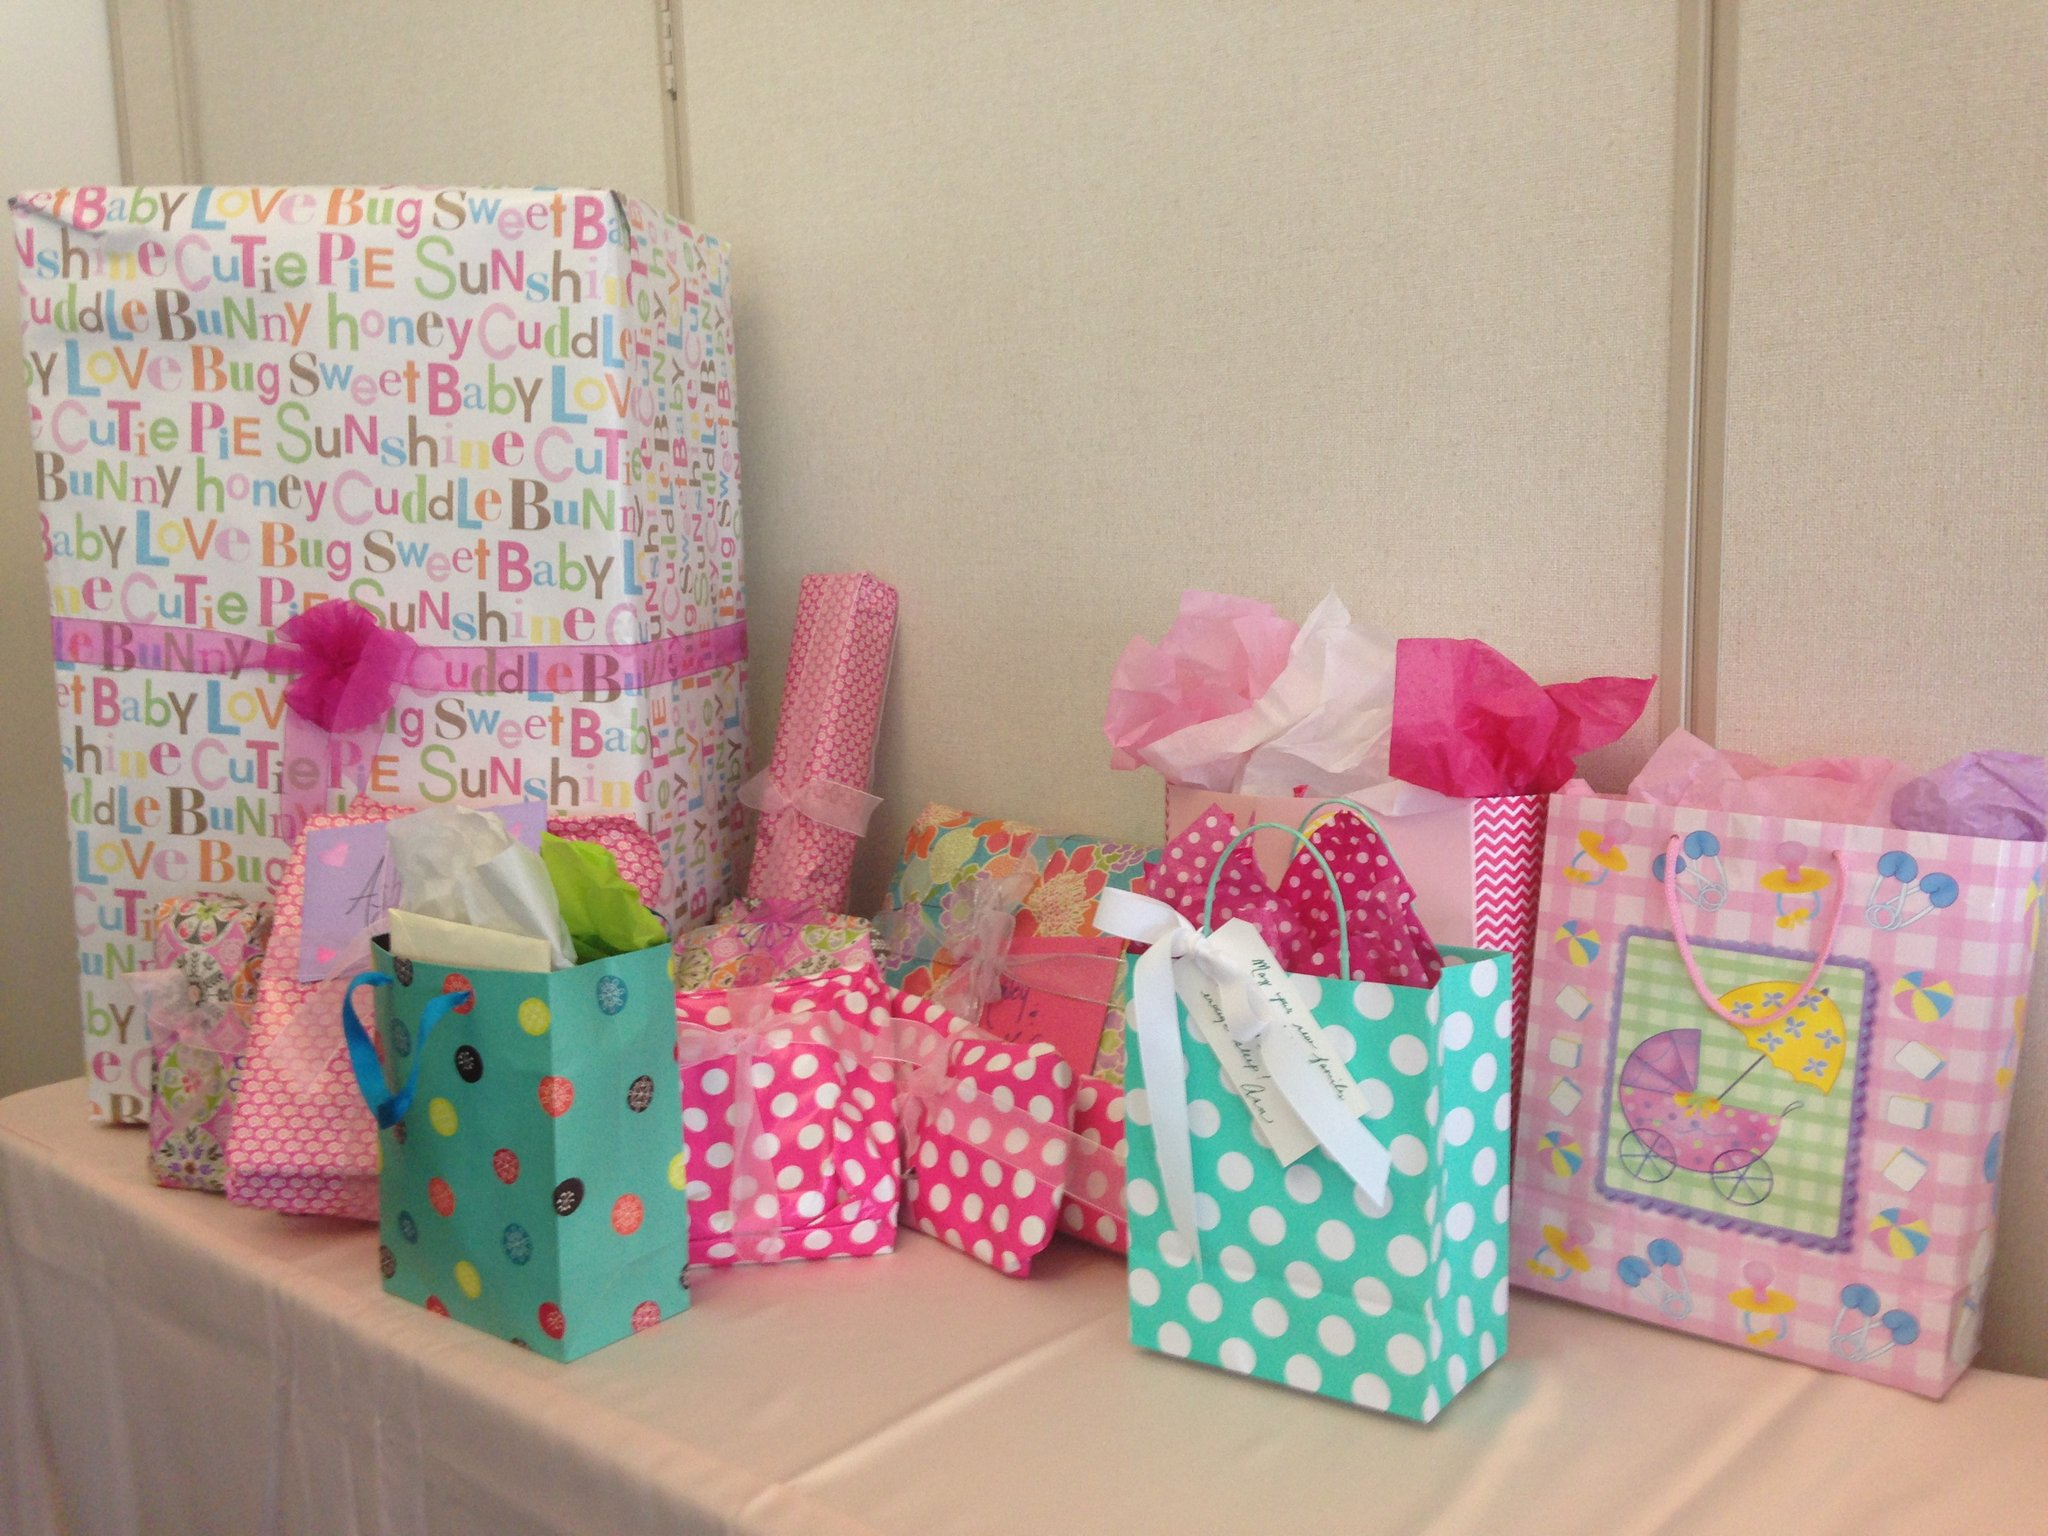 Fun Activities to Have at a Baby Shower